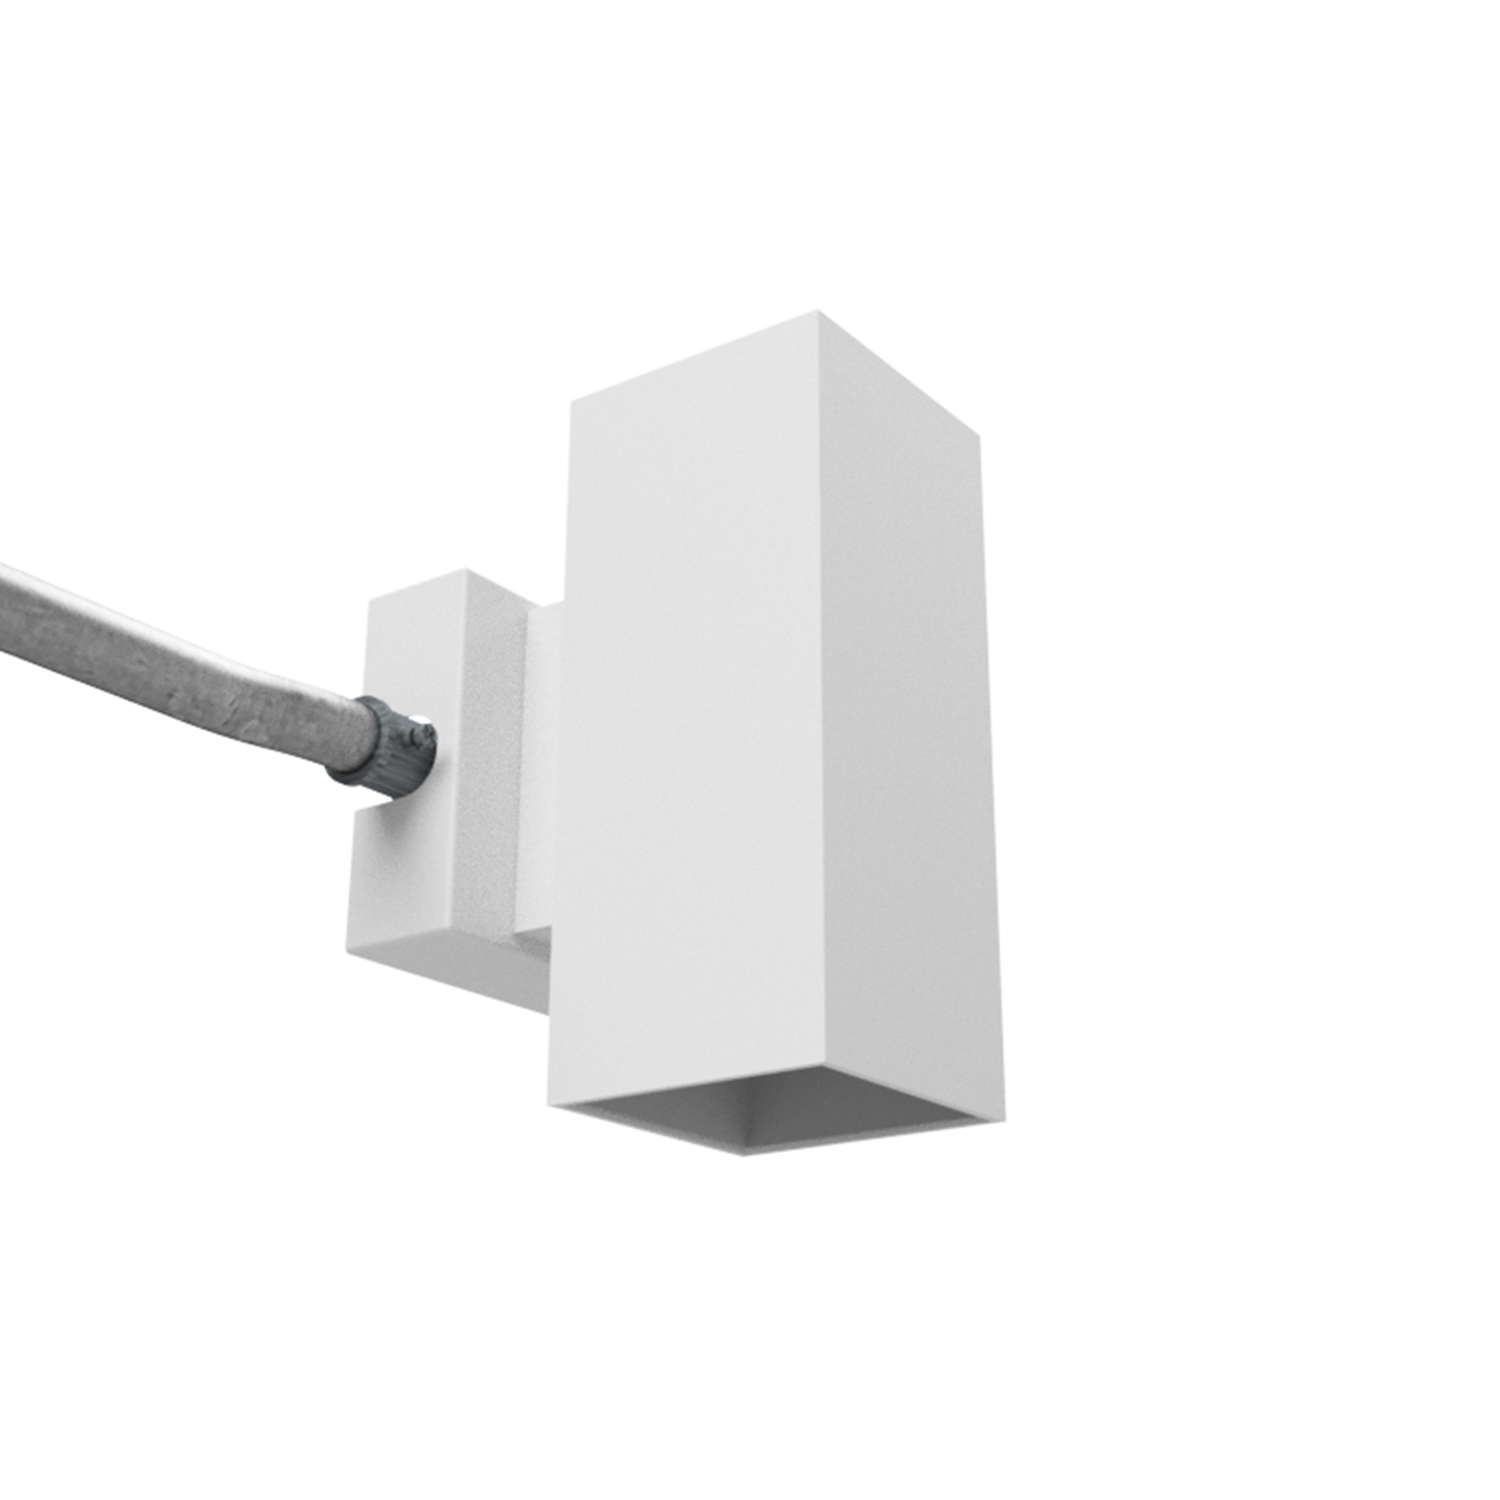 Direct – Conduit Wall Mount